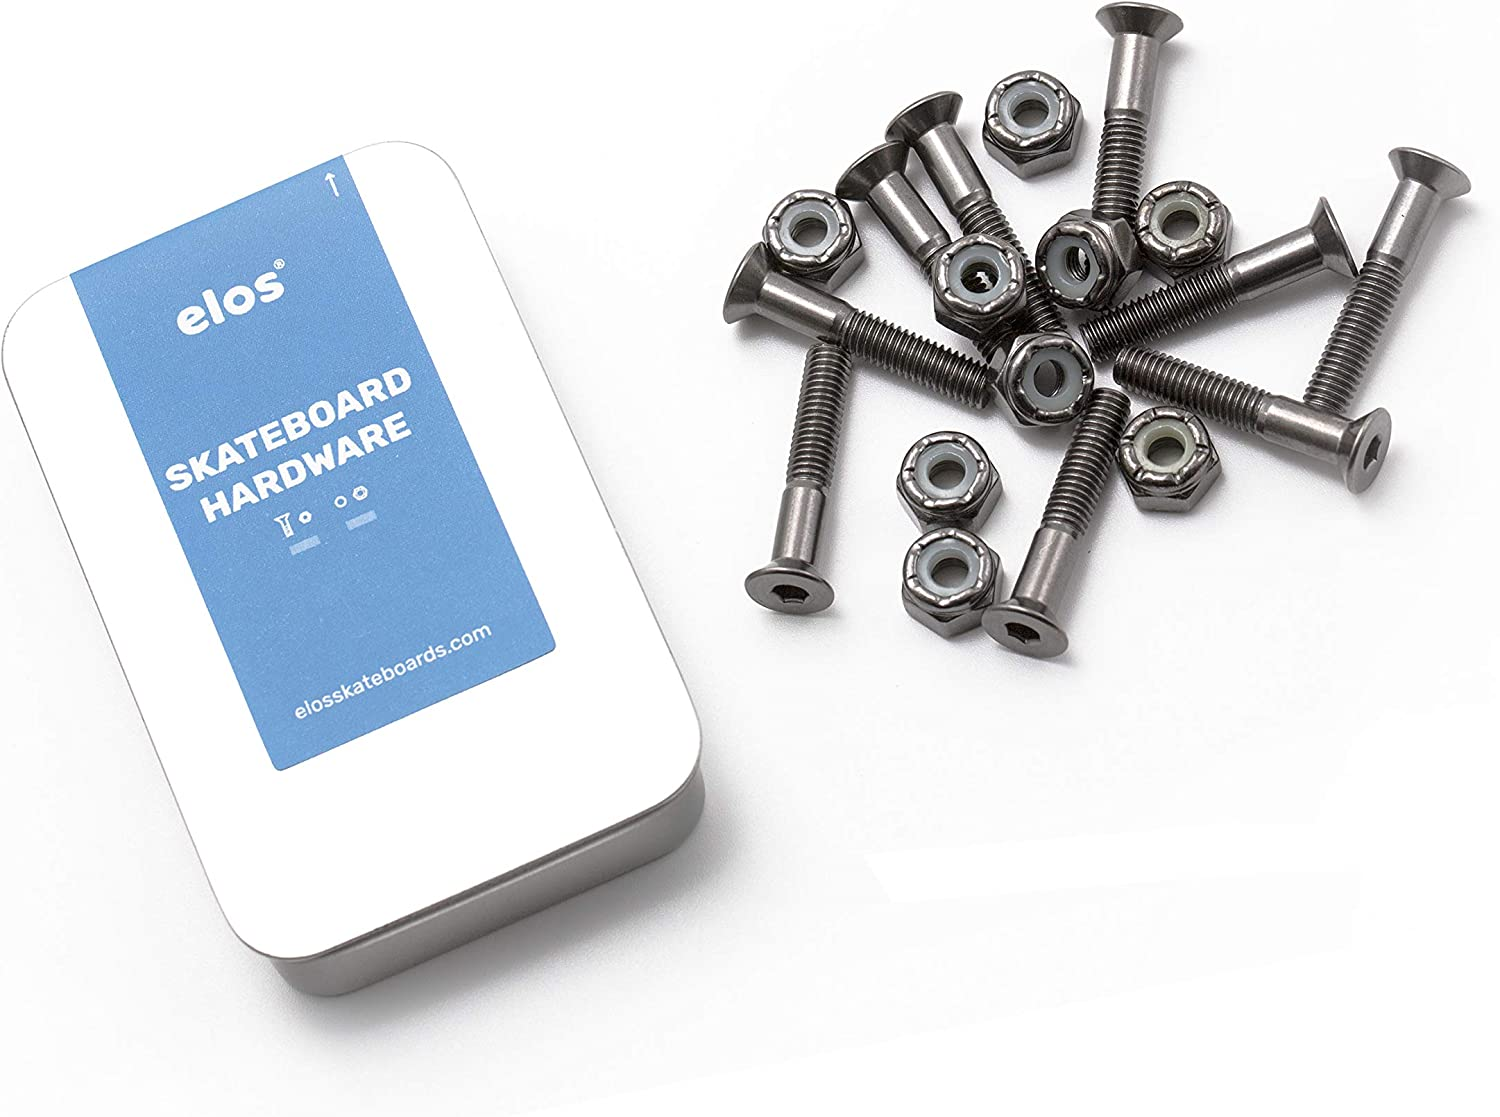 Indianapolis Mall ELOS Skateboards Mounting Hardware Set Max 86% OFF Hardened St Strength High